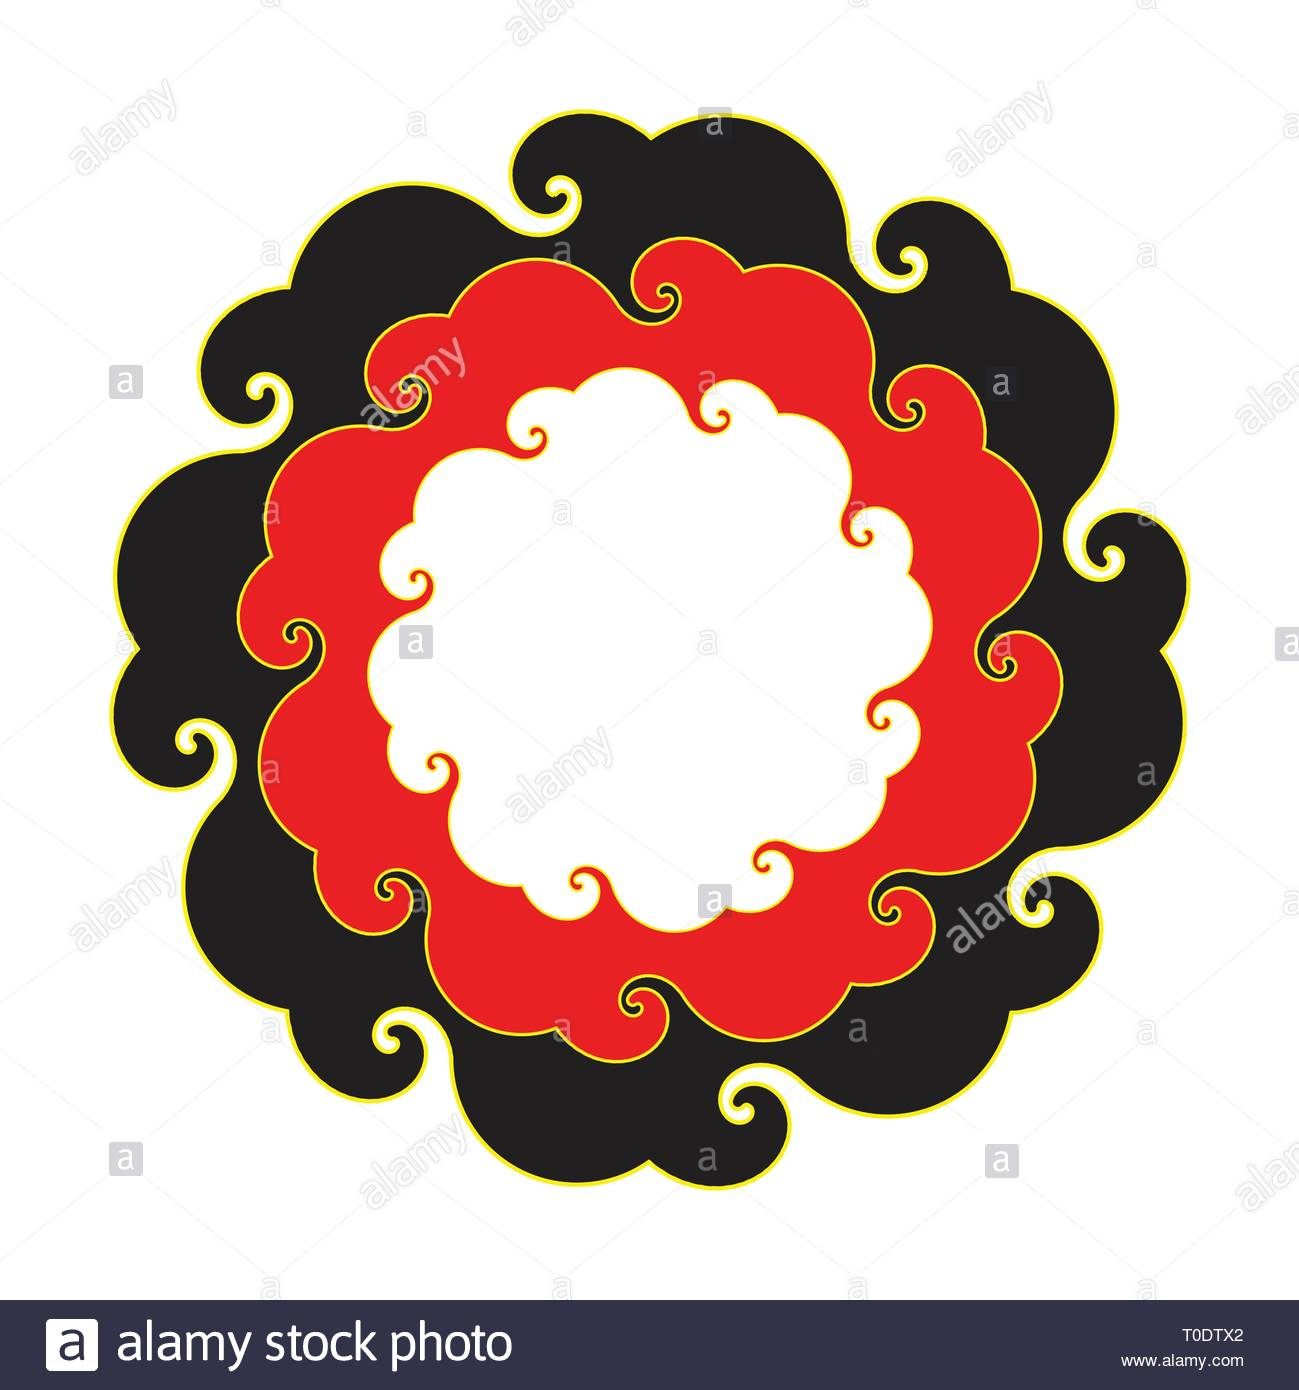 curly round clouds frame in red black gold shades - Stock Image